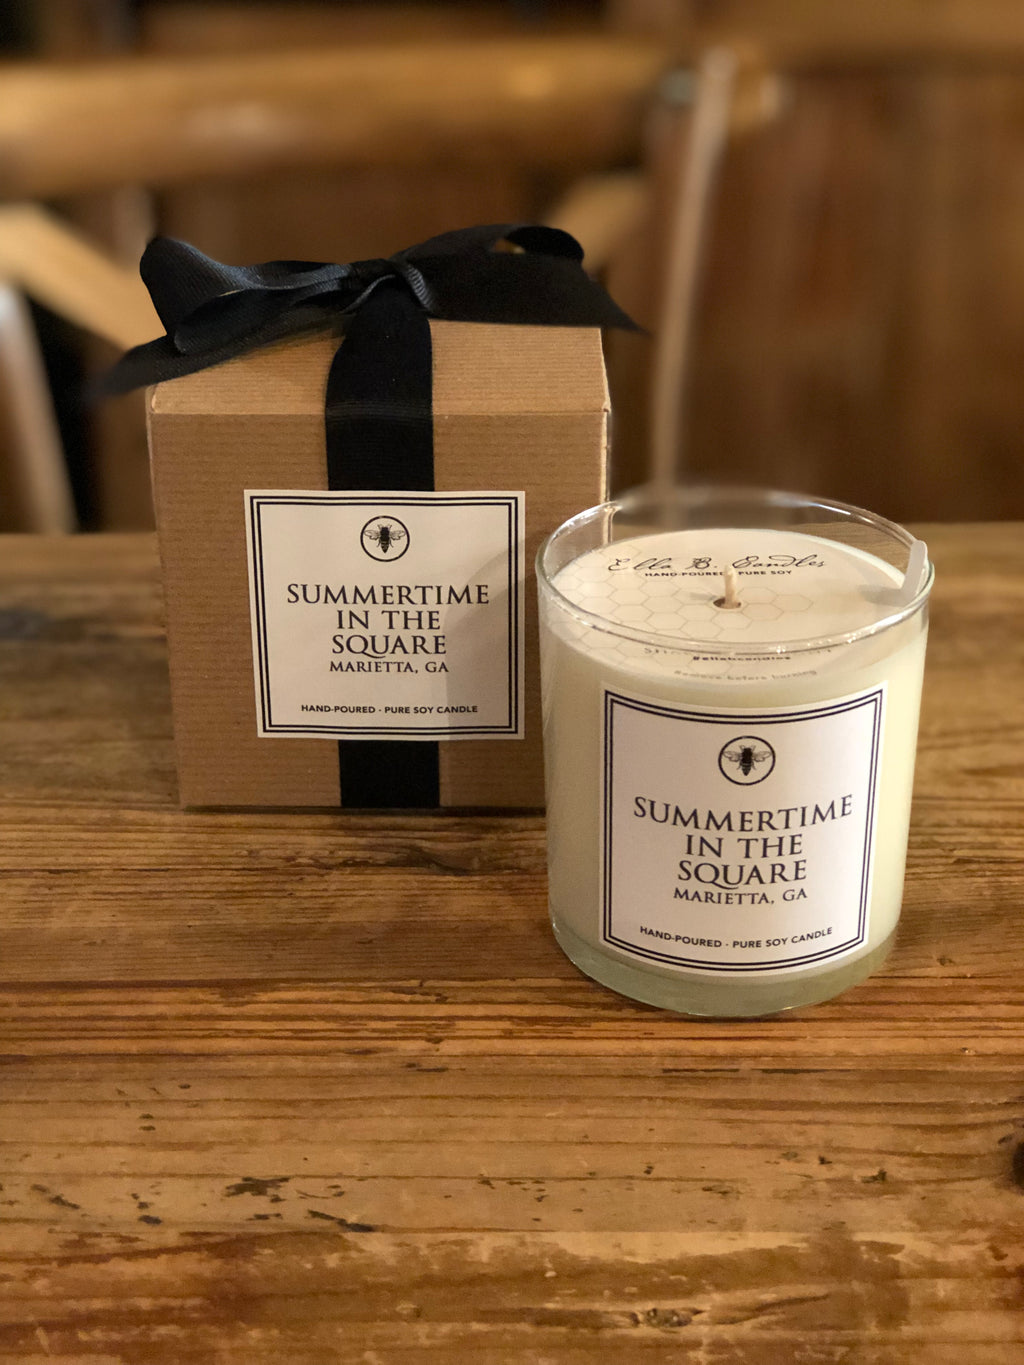 Summertime in the Square Candle